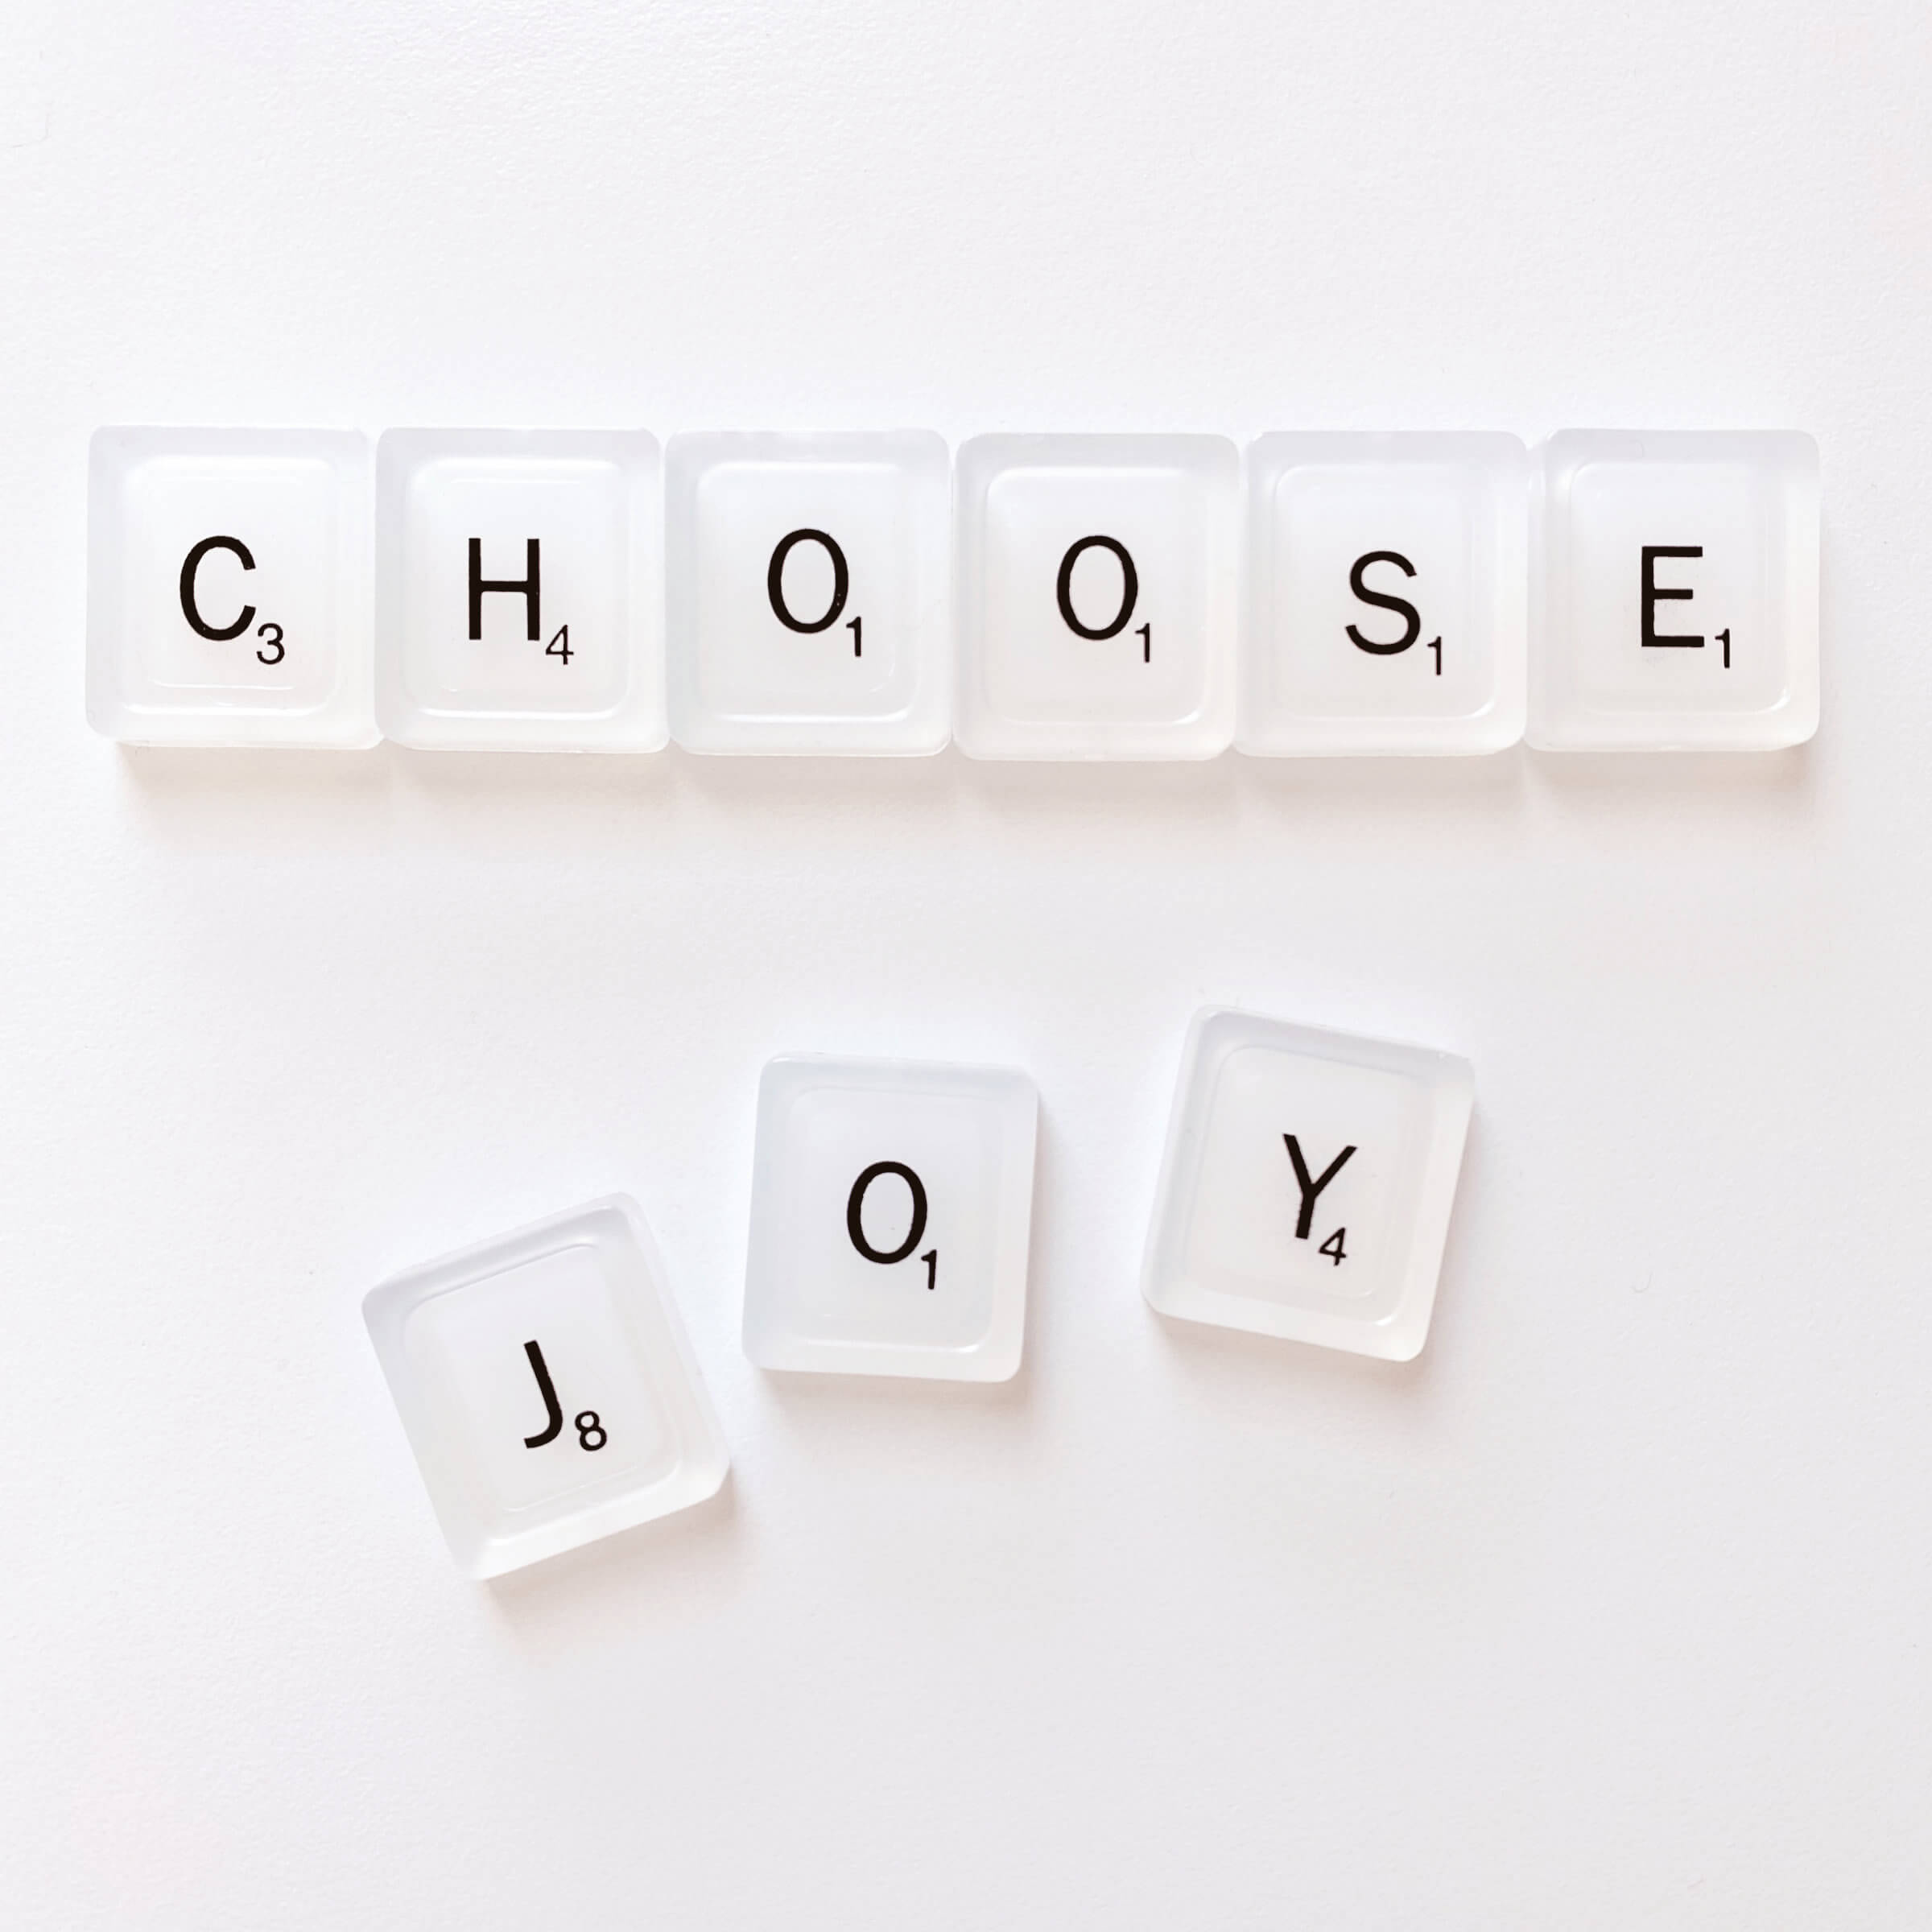 KonMari Is About Progressing From Least To Most Difficult. Just Remember To 'Choose Joy', Like These Scrabble Letters Suggest